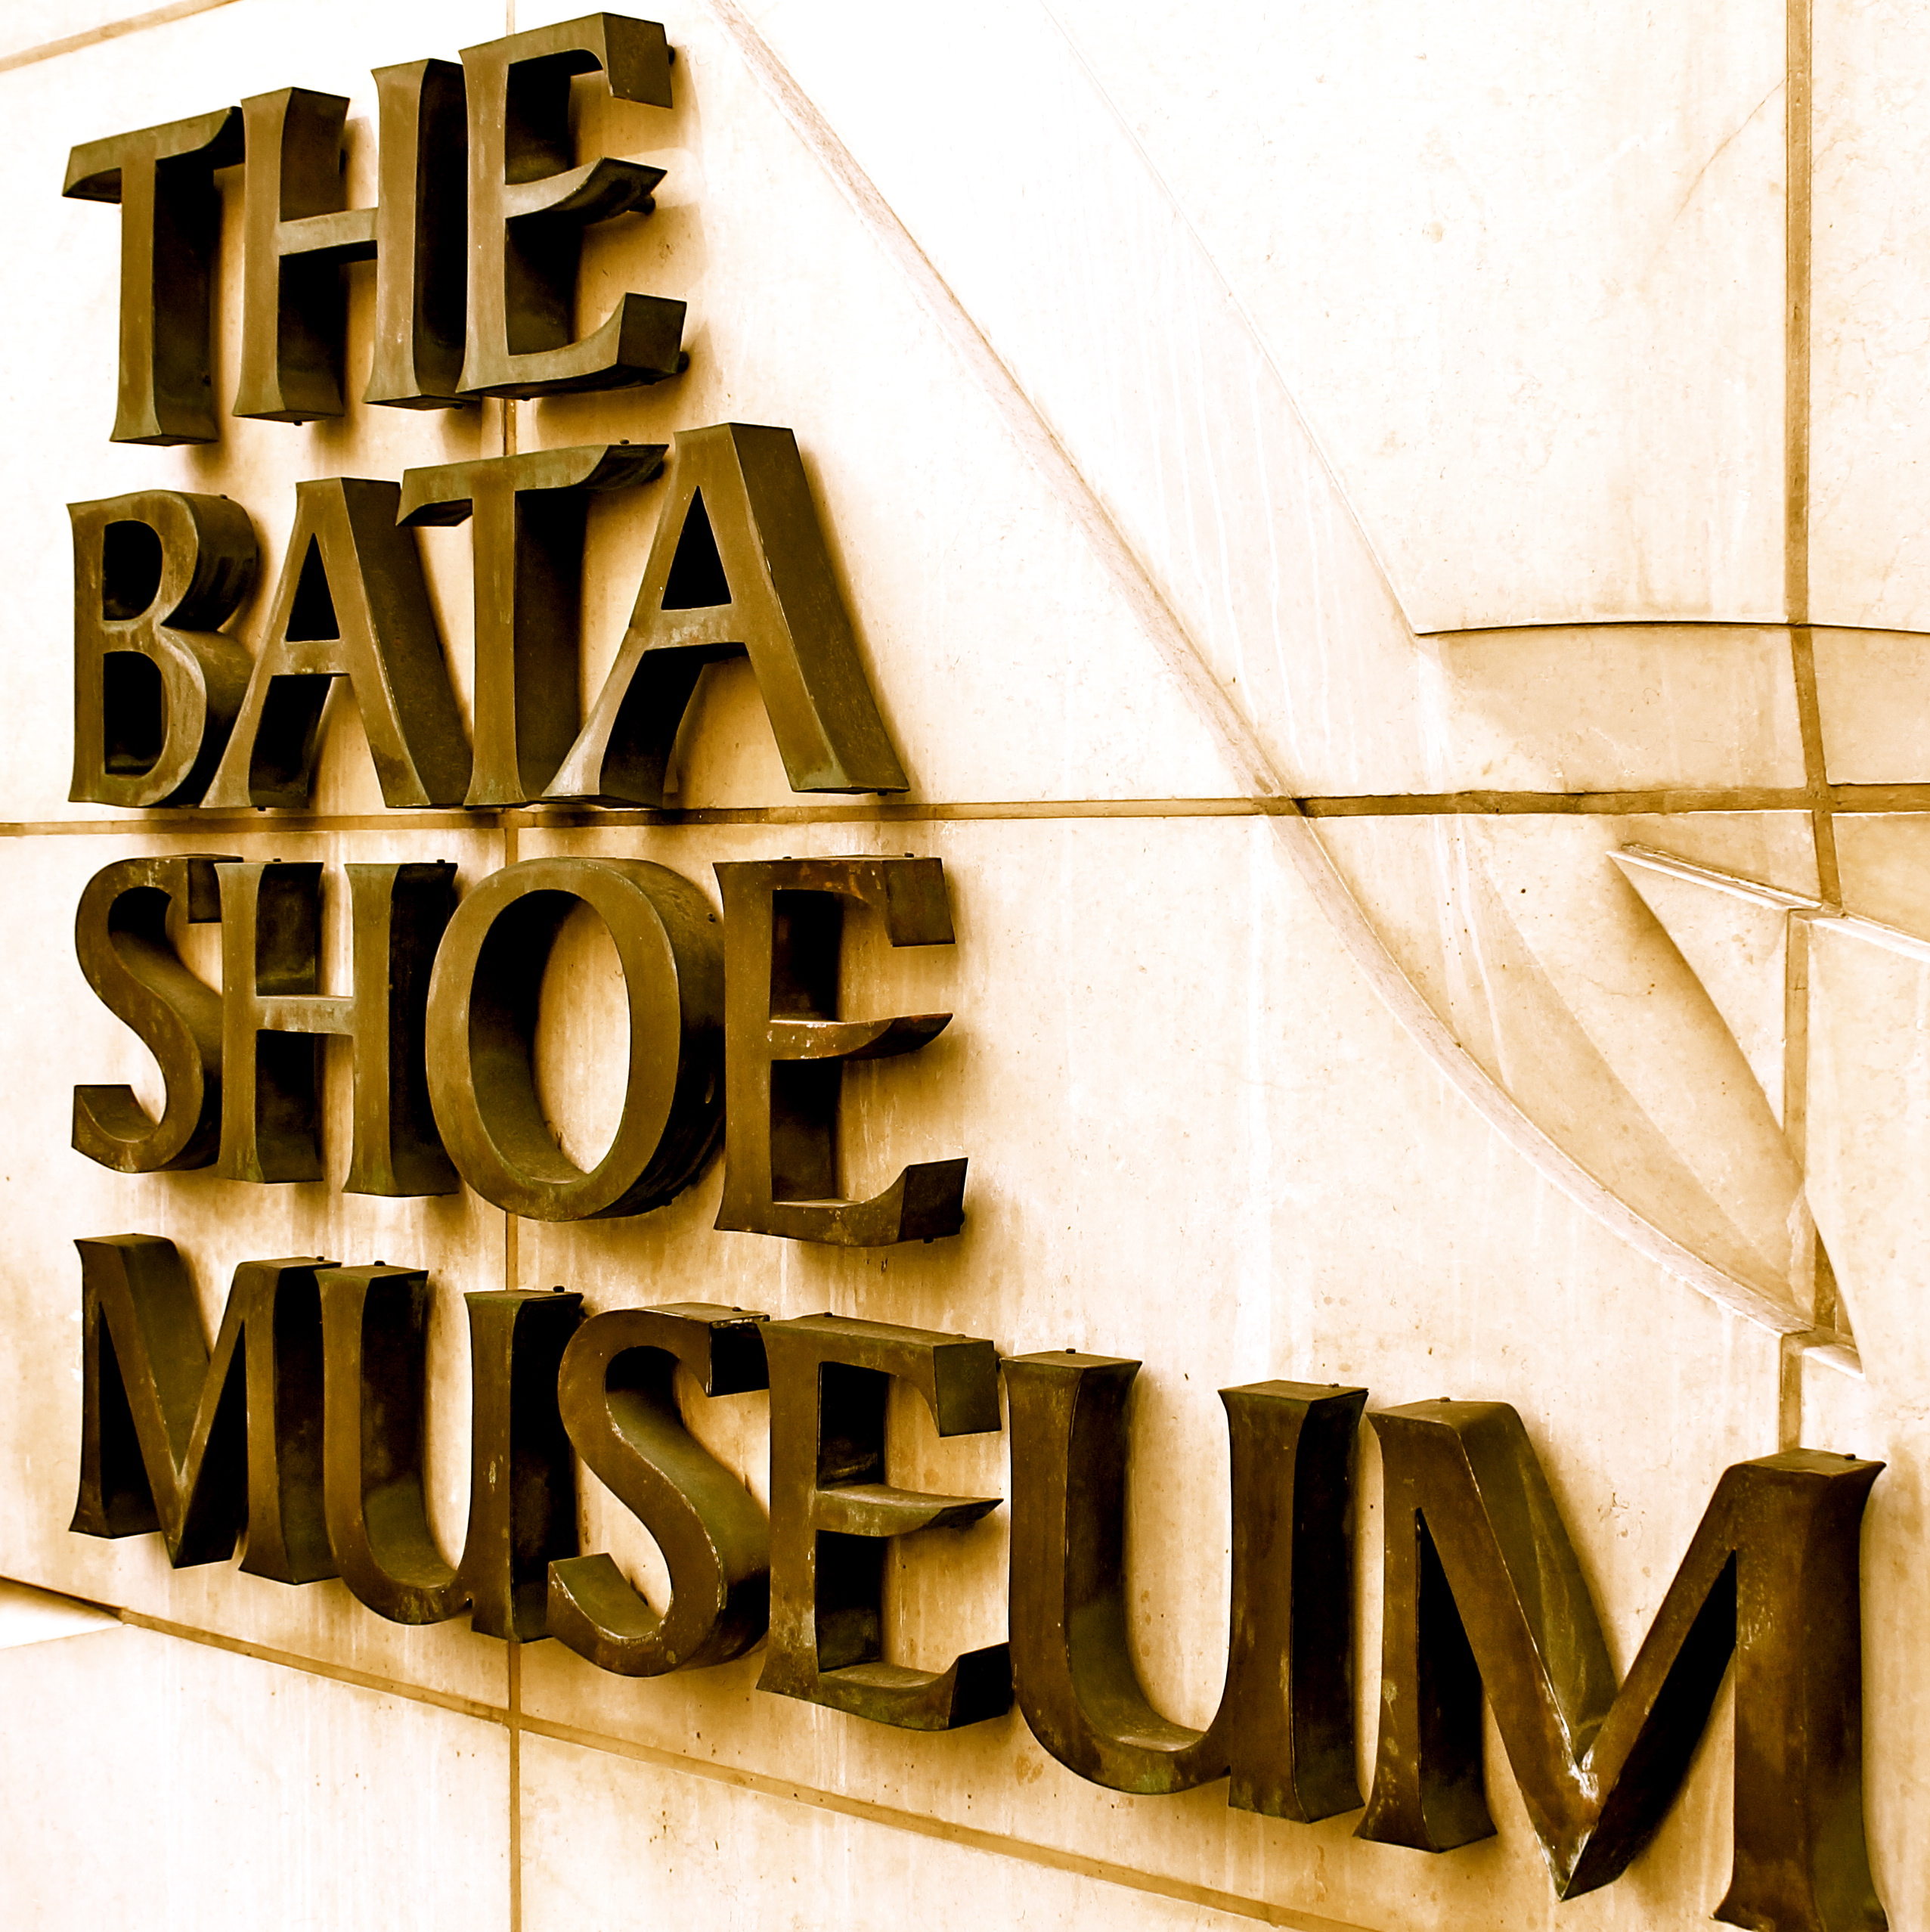 Bata Shoe Museum Review